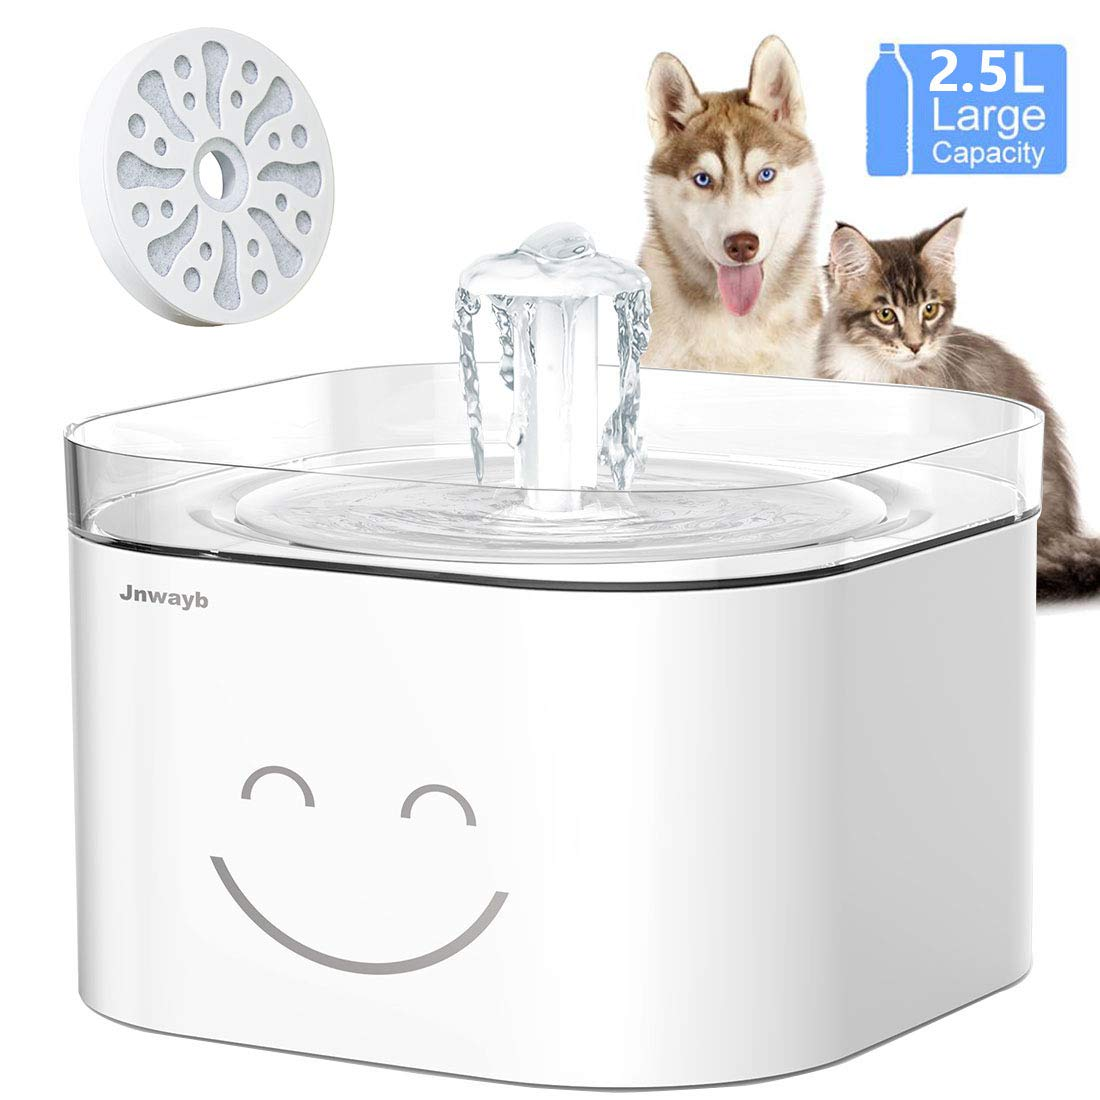 Jnwayb Cat Water Fountain Ultra-Silent Pump Automatic Pet Water Fountain Dog Water Dispenser with Multiple-Layer Filter Dog Cat Health Caring Fountain 2.5L B92 Water Fountain